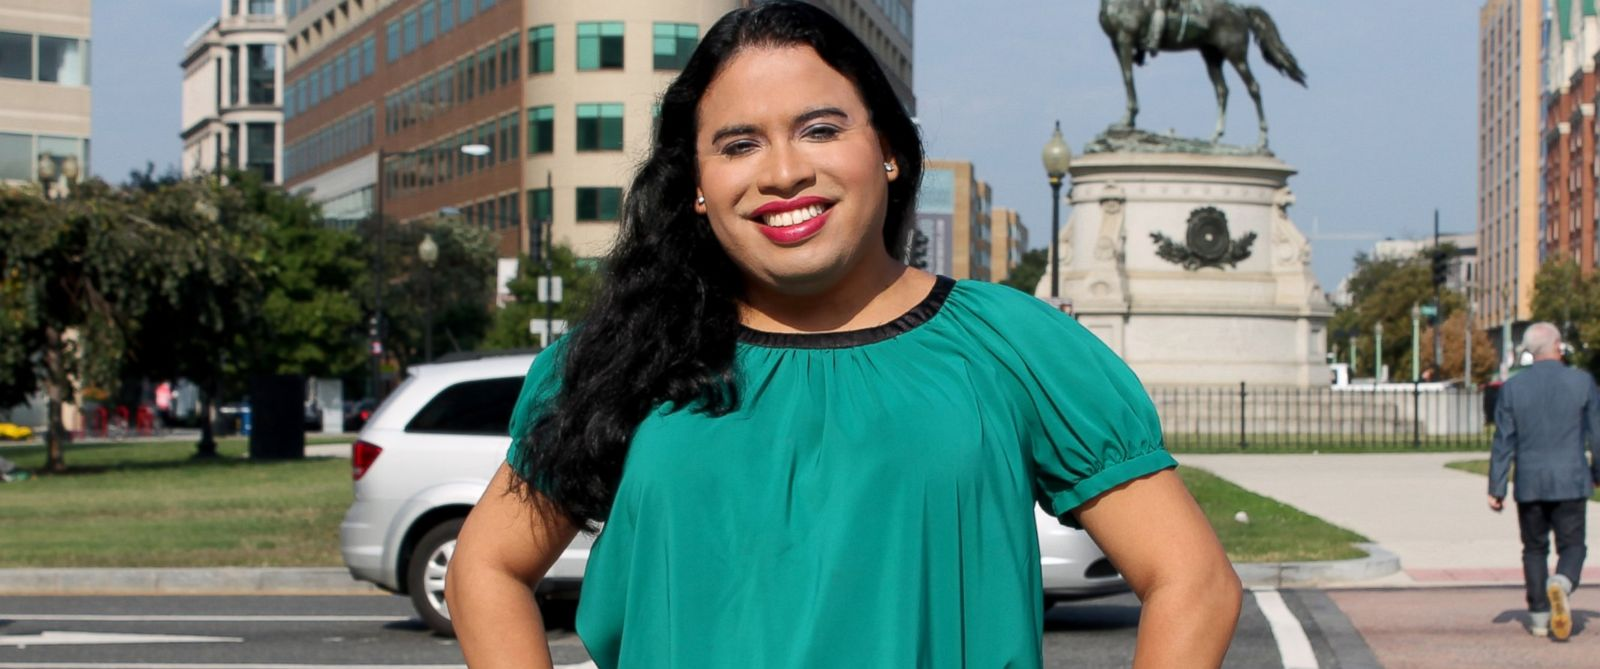 PHOTO: This handout photo provided by the National Center for Transgender Equality (NCTE) shows Raffi Freedman-Gurspan in Washington.